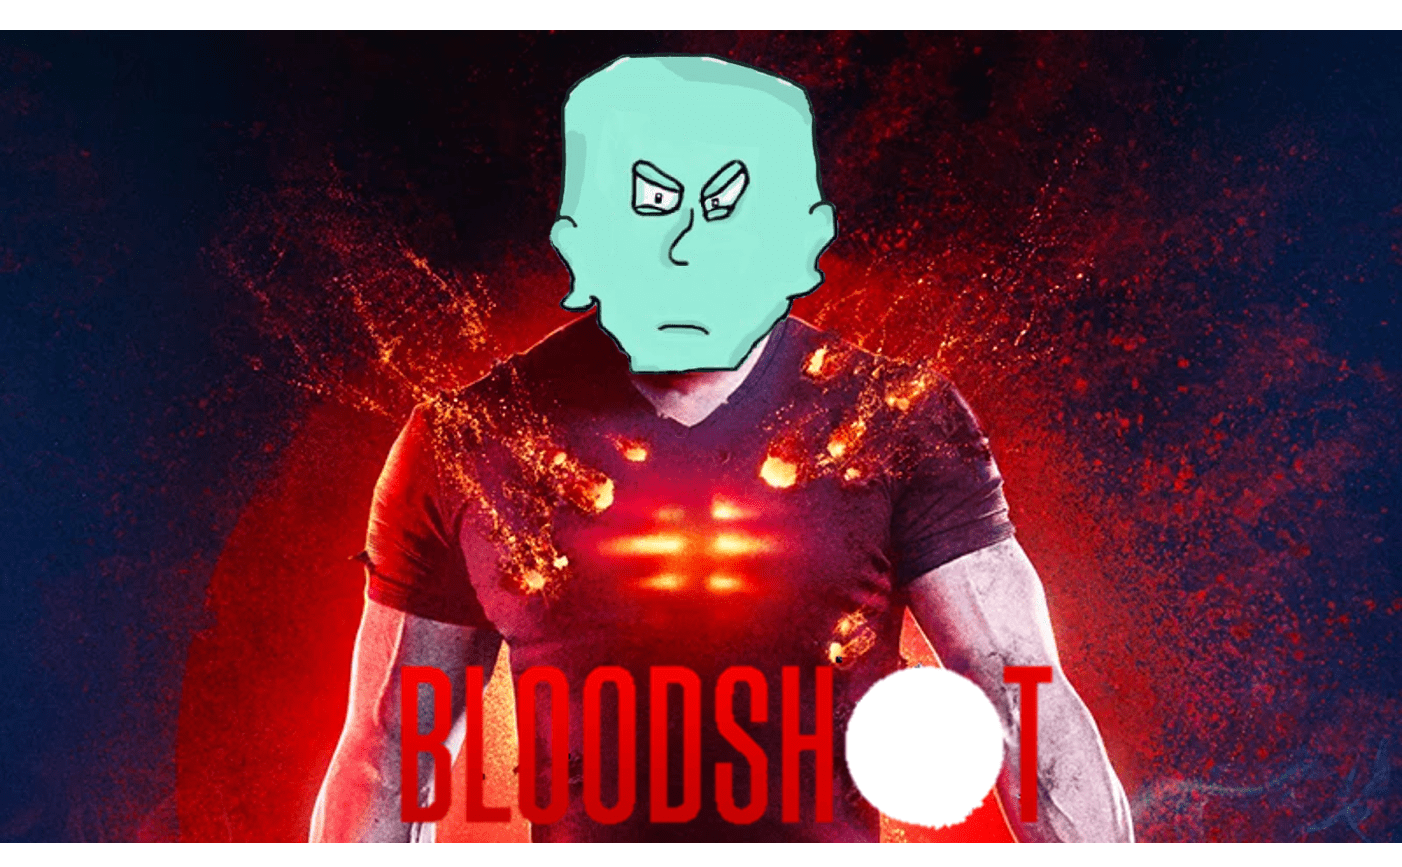 Bloodshot is forgettable.